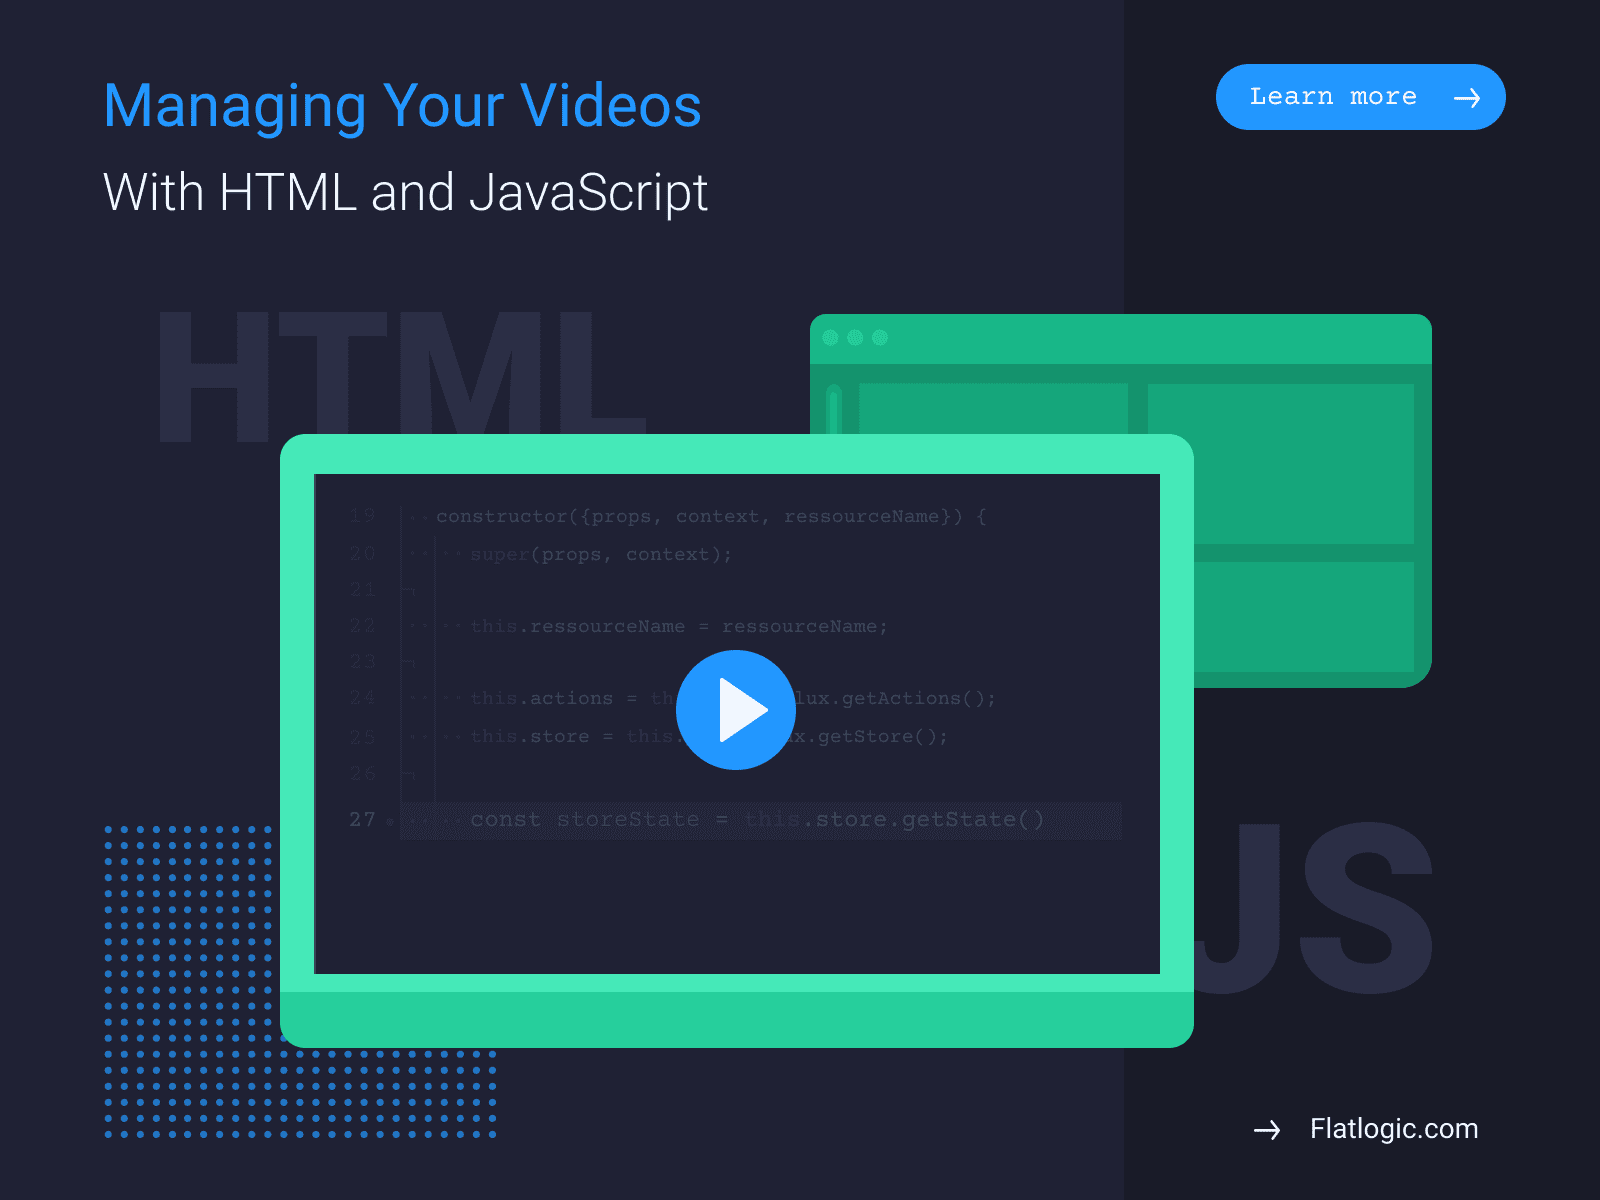 Using HTML and JavaScript to Manipulate Videos